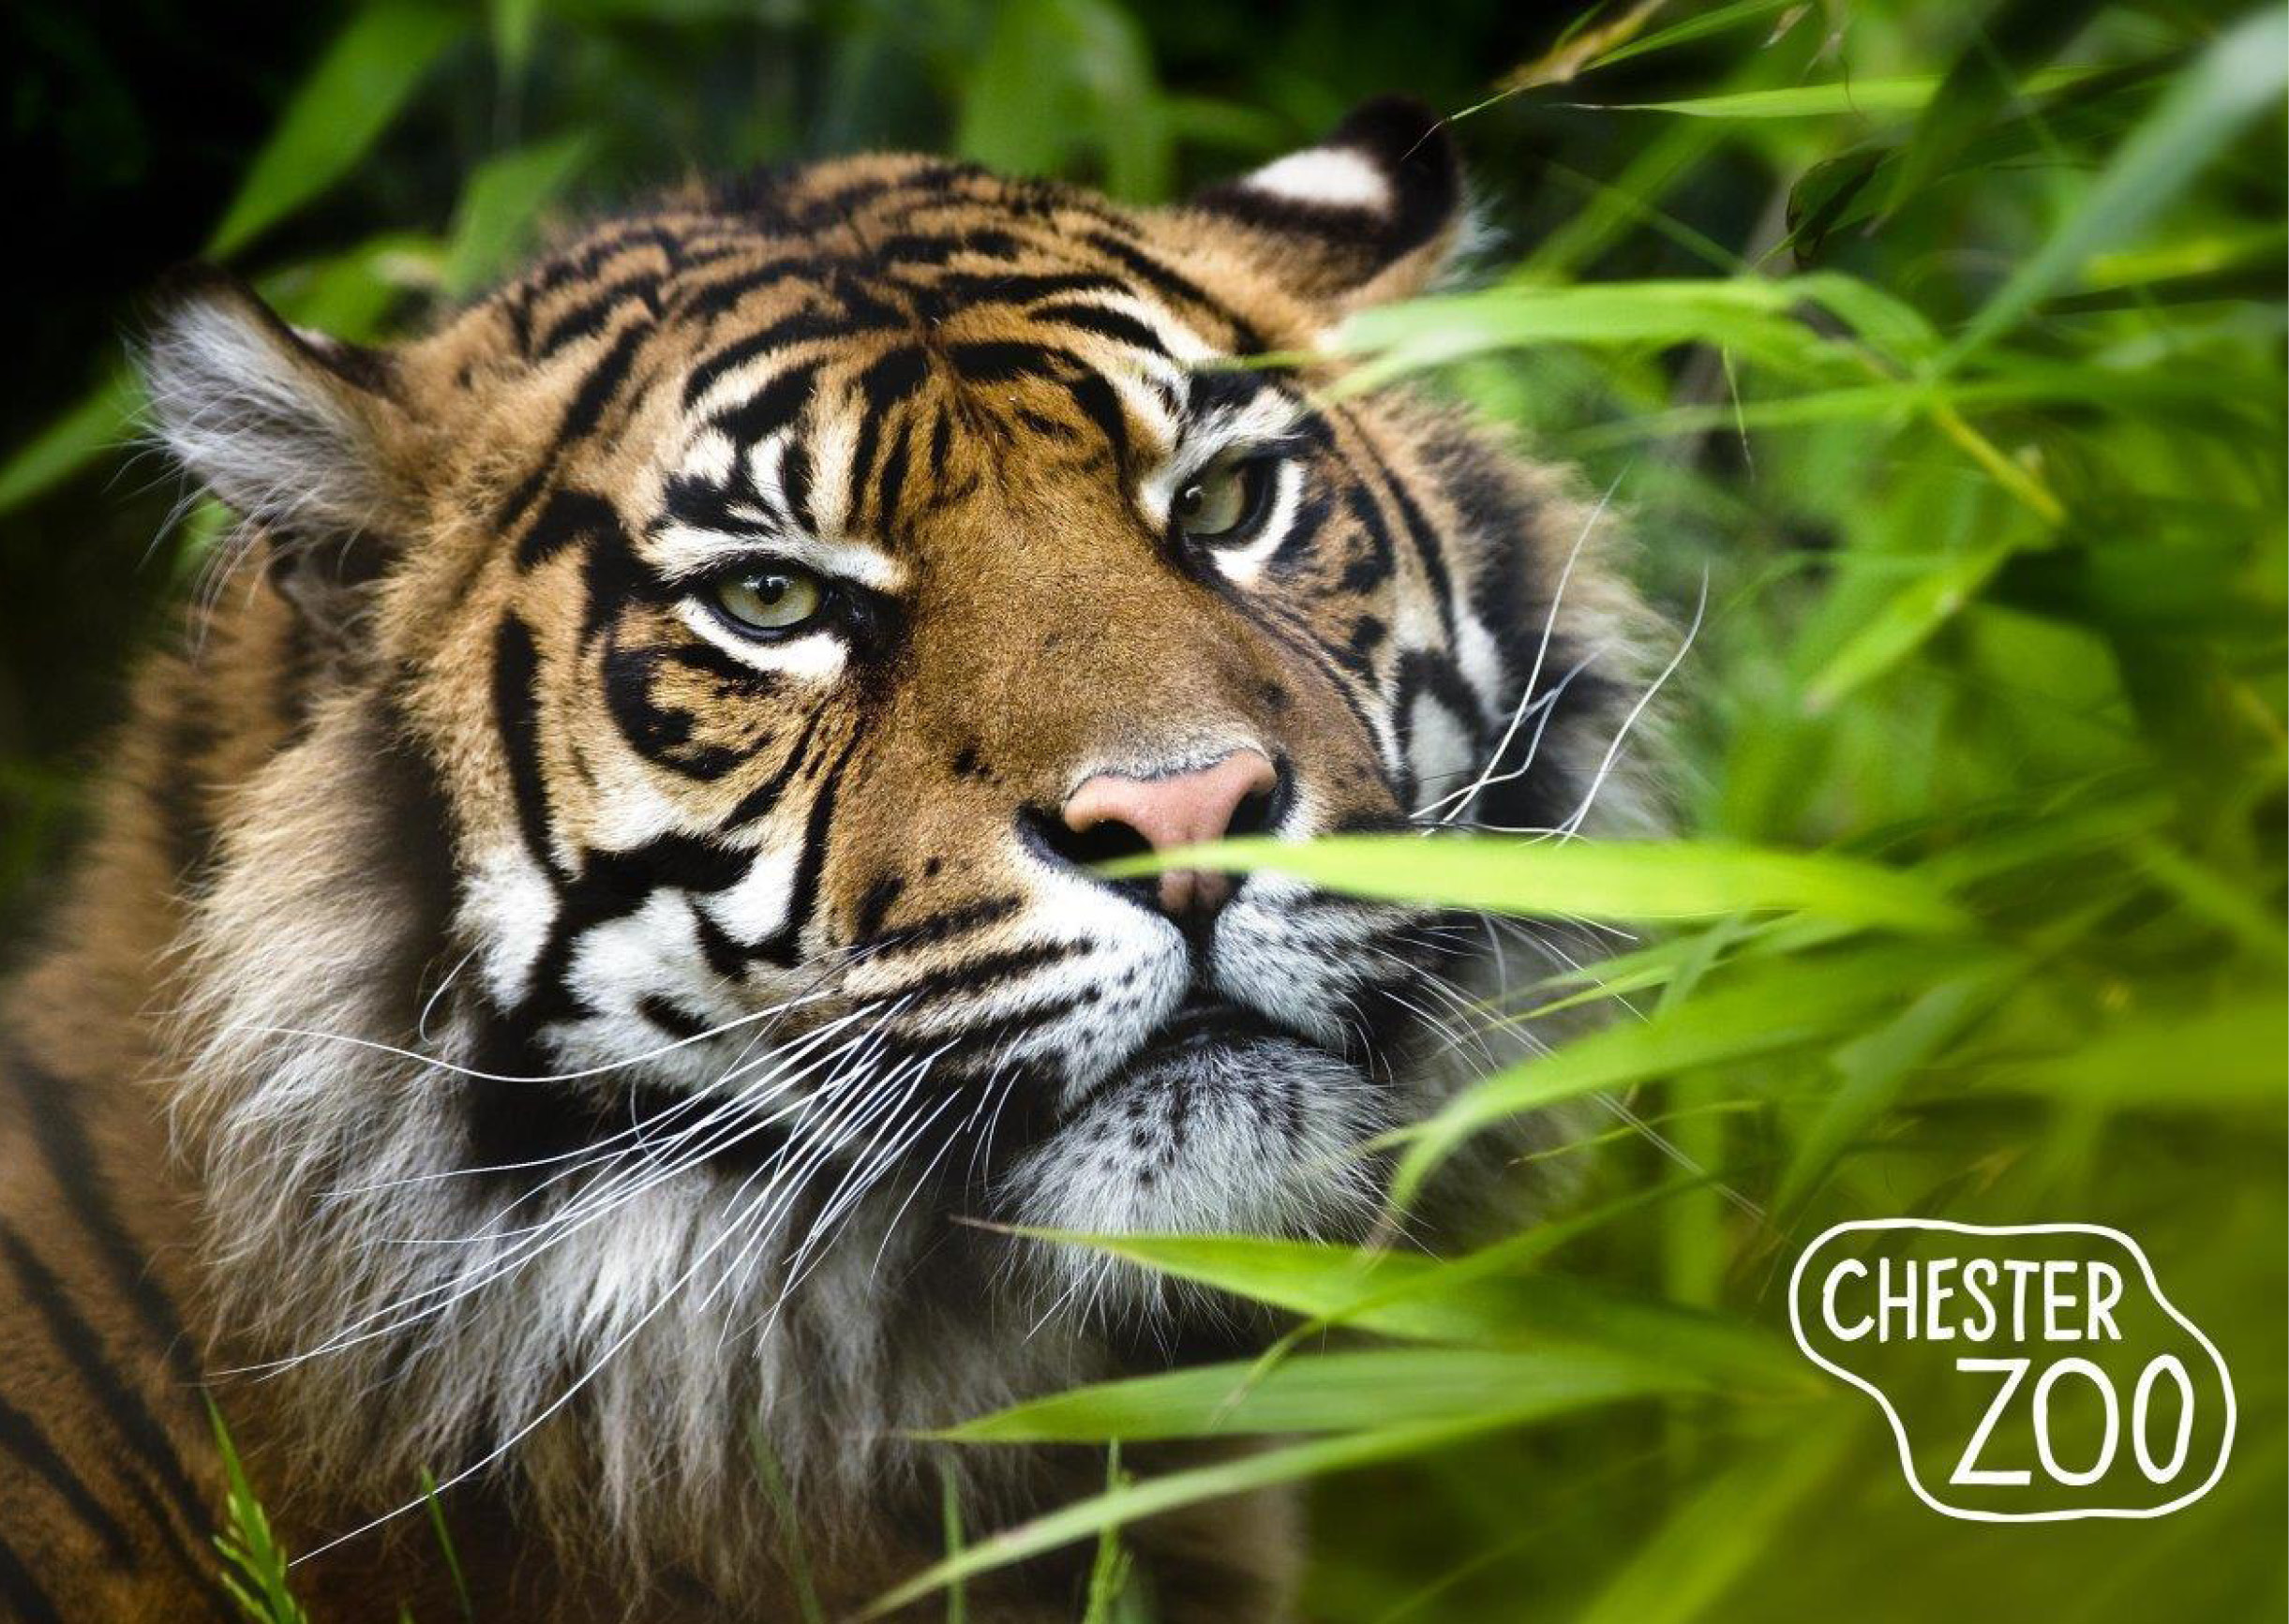 Chester Zoo Review!